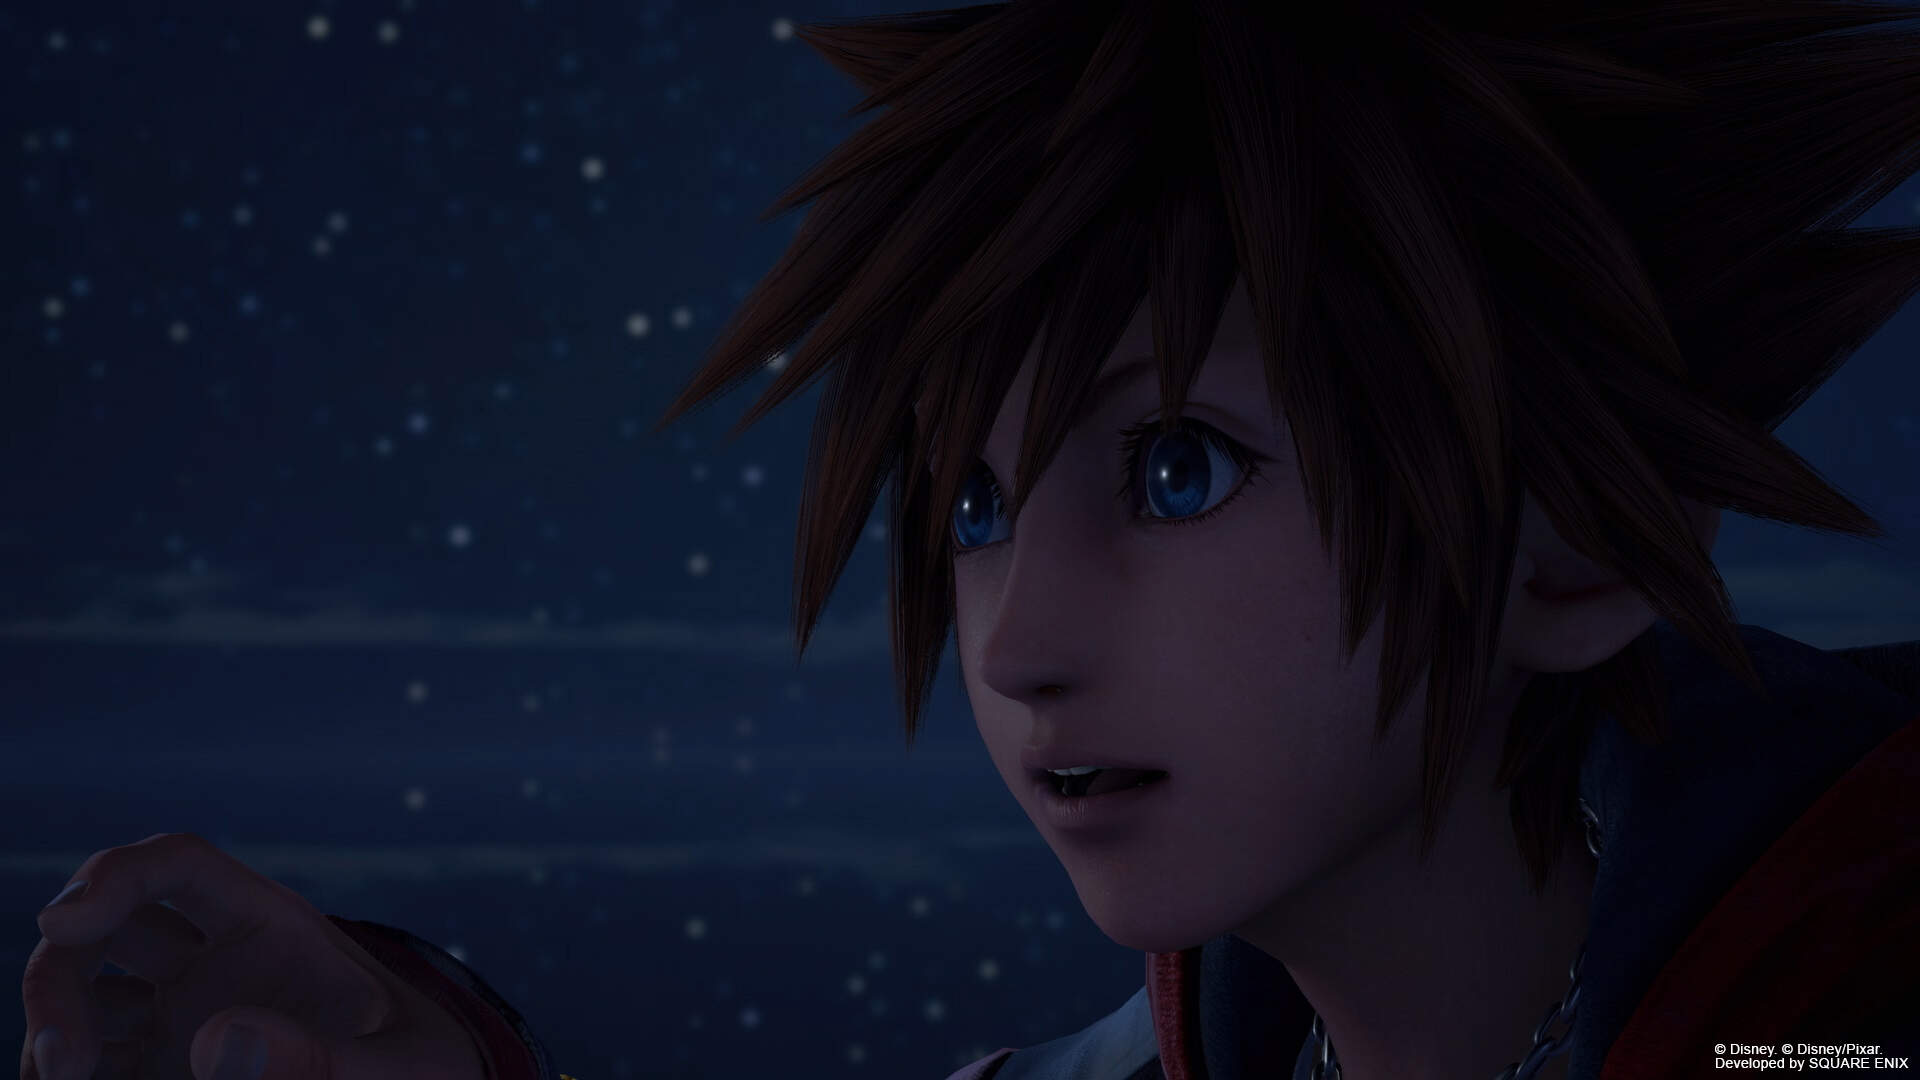 Kingdom Hearts 3's Re Mind DLC Secret Ending Has an Unexpected Nod to Tetsuya Nomura's Past